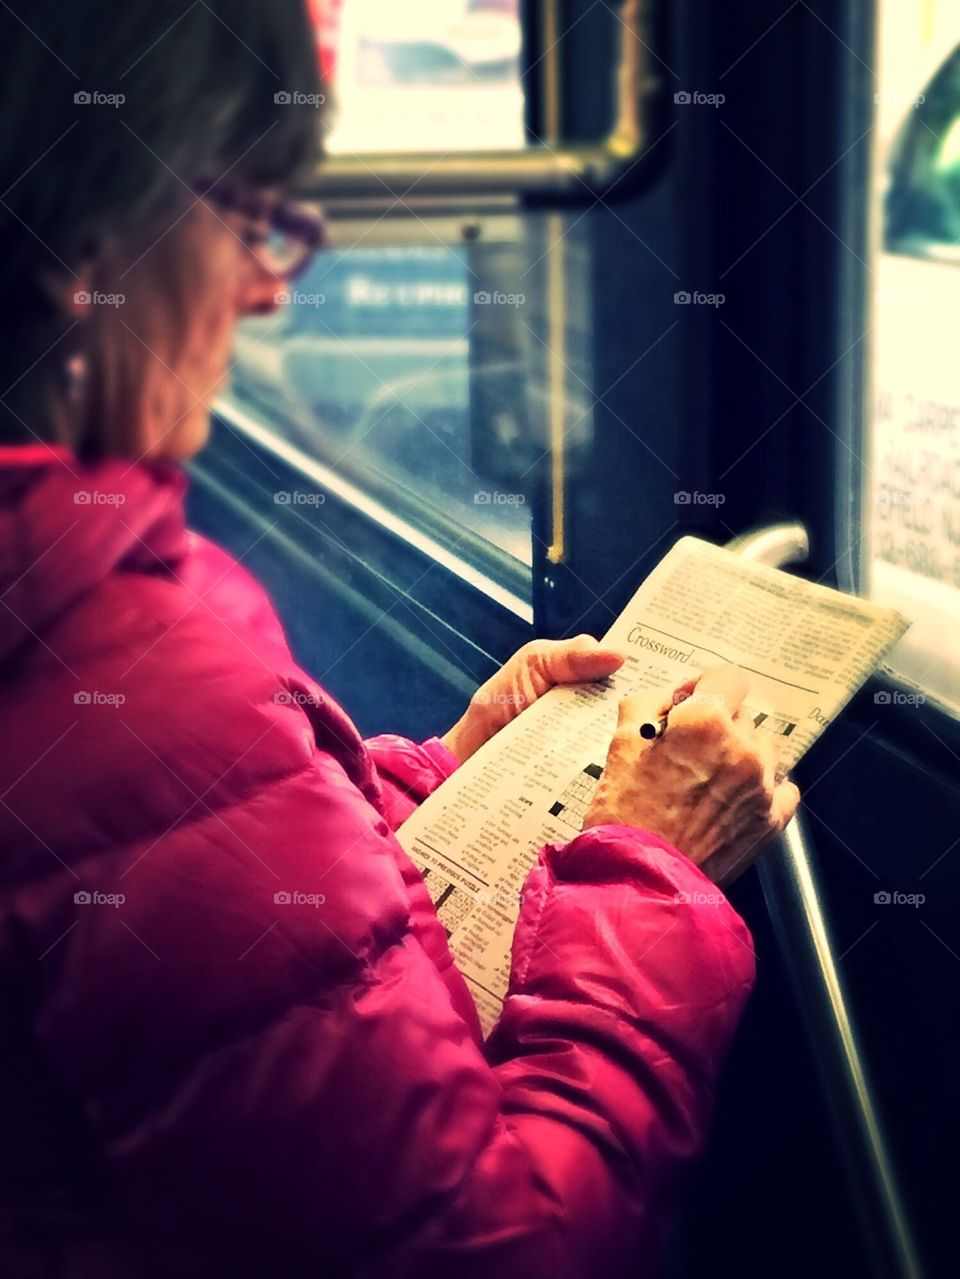 New York Times crossword puzzle on the bus